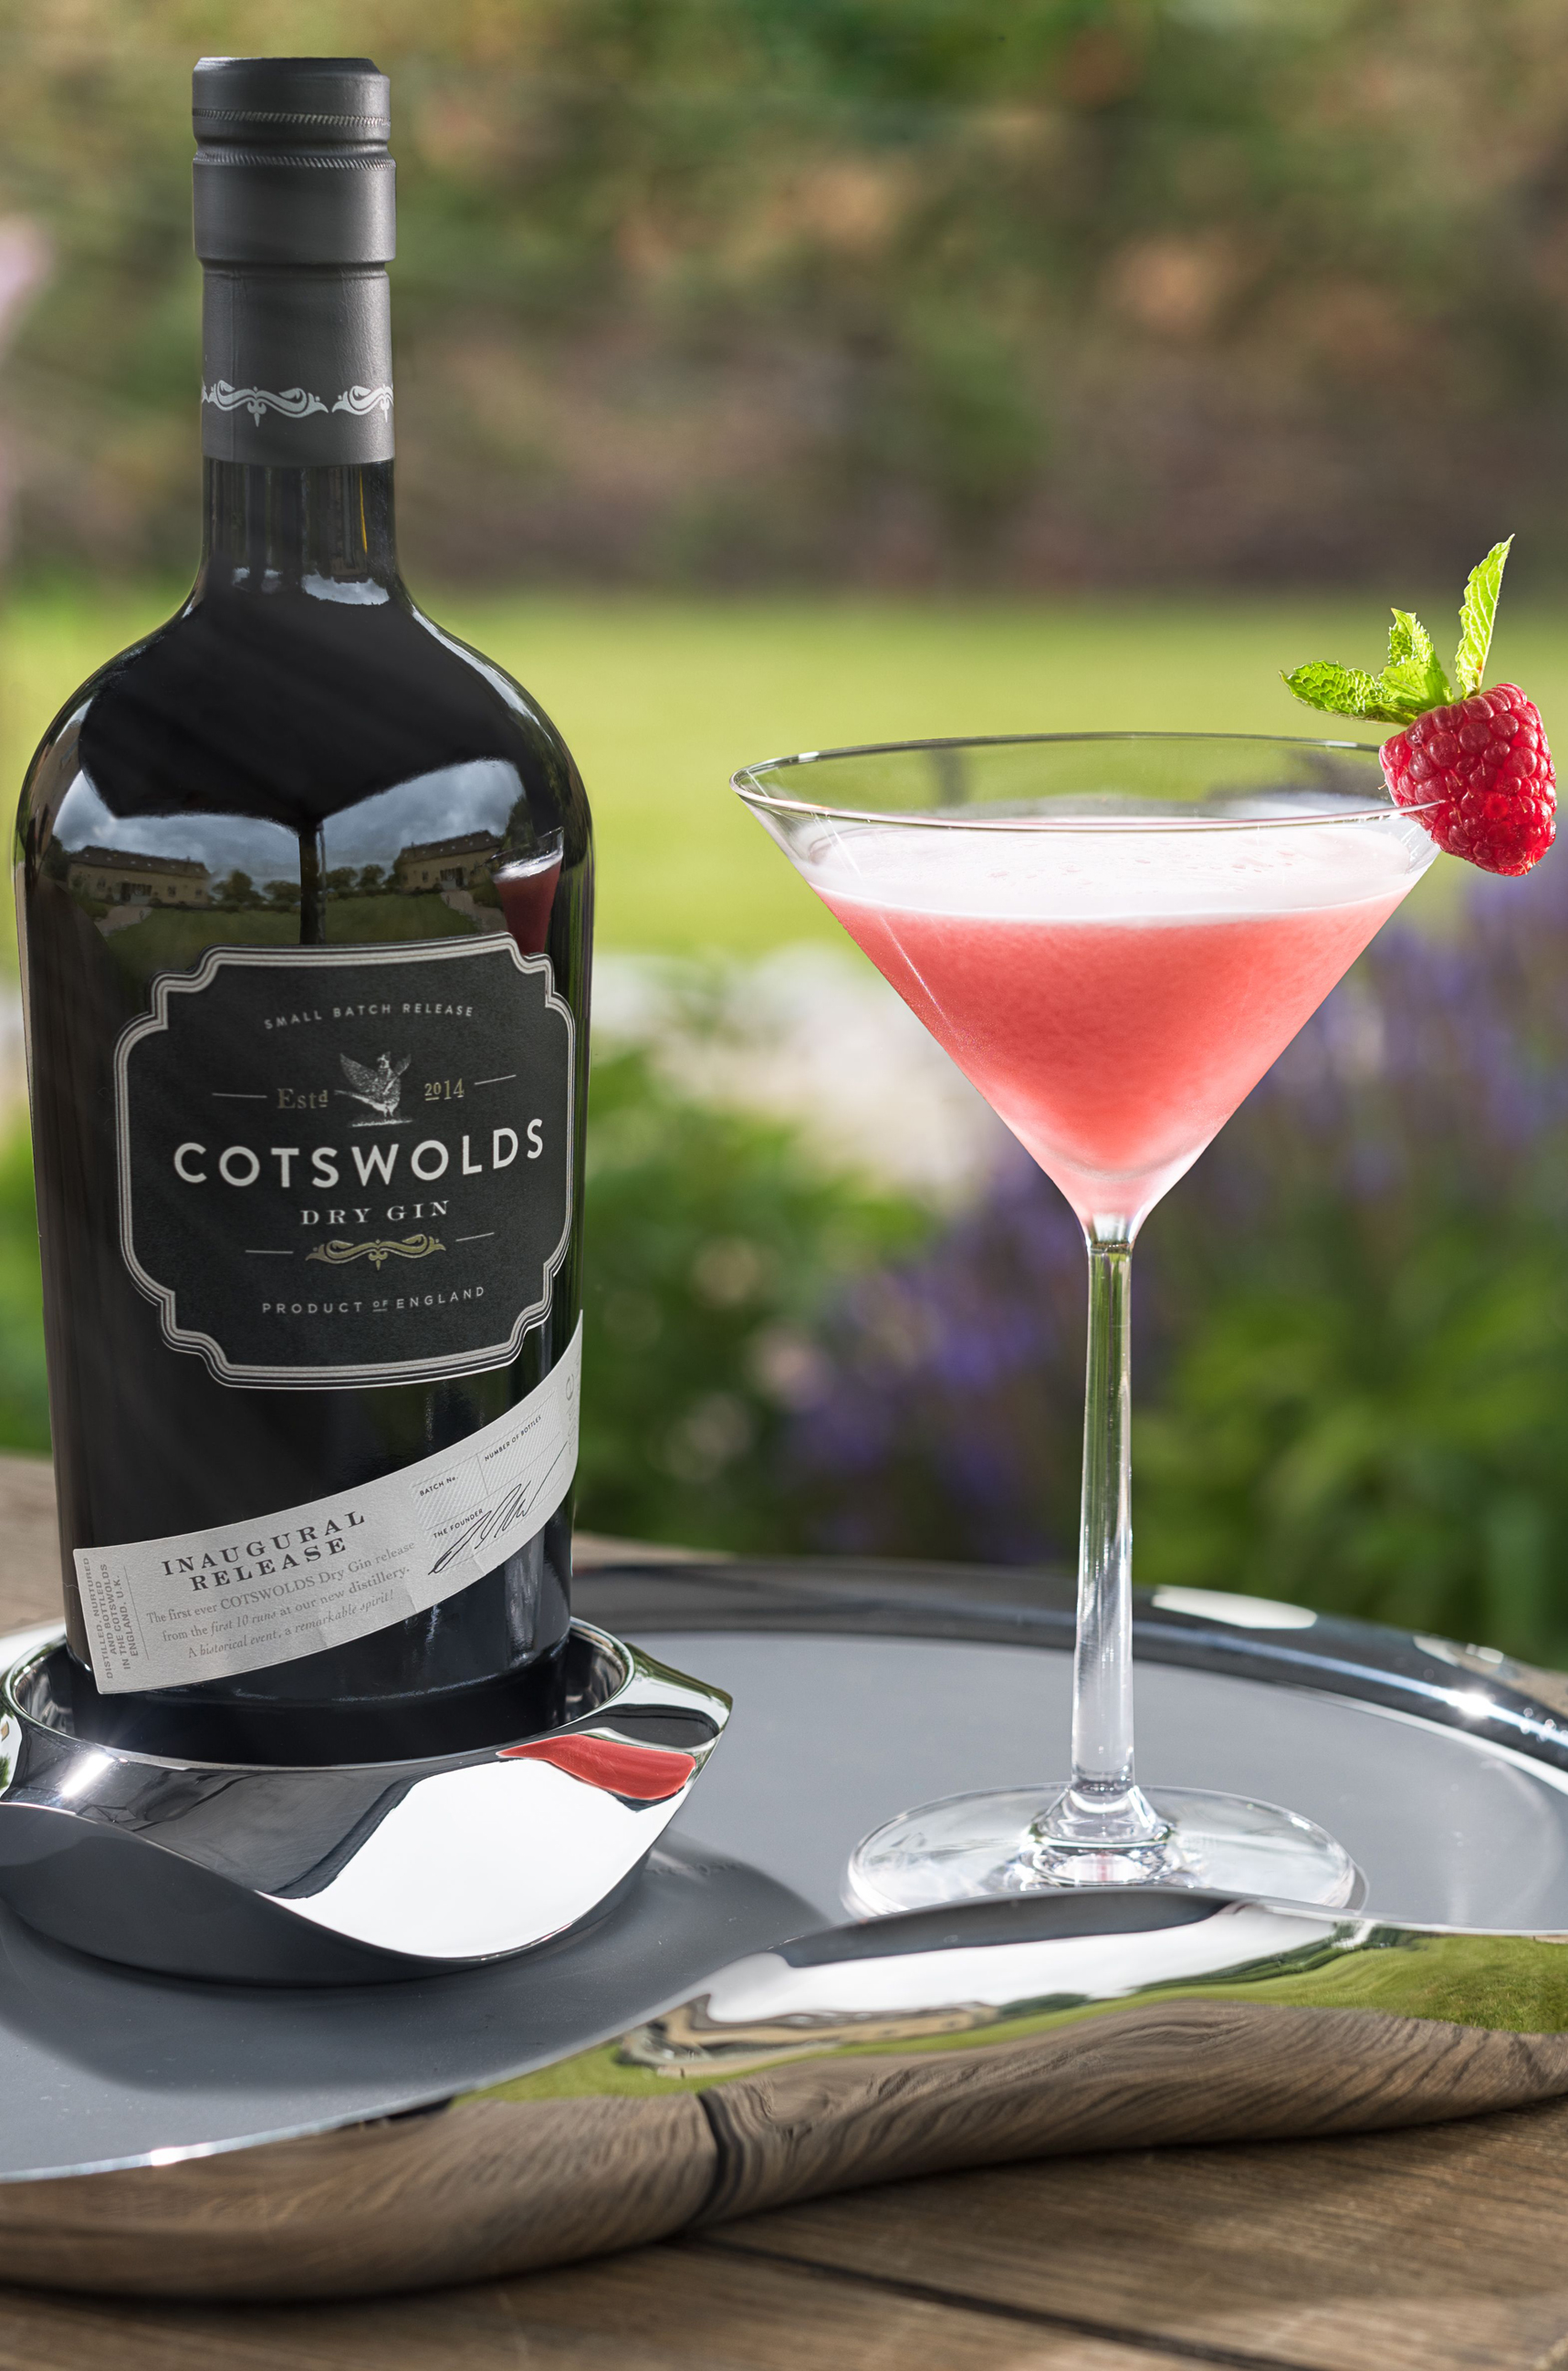 Cloer Leaf cocktail with Cotswoolds dry gin